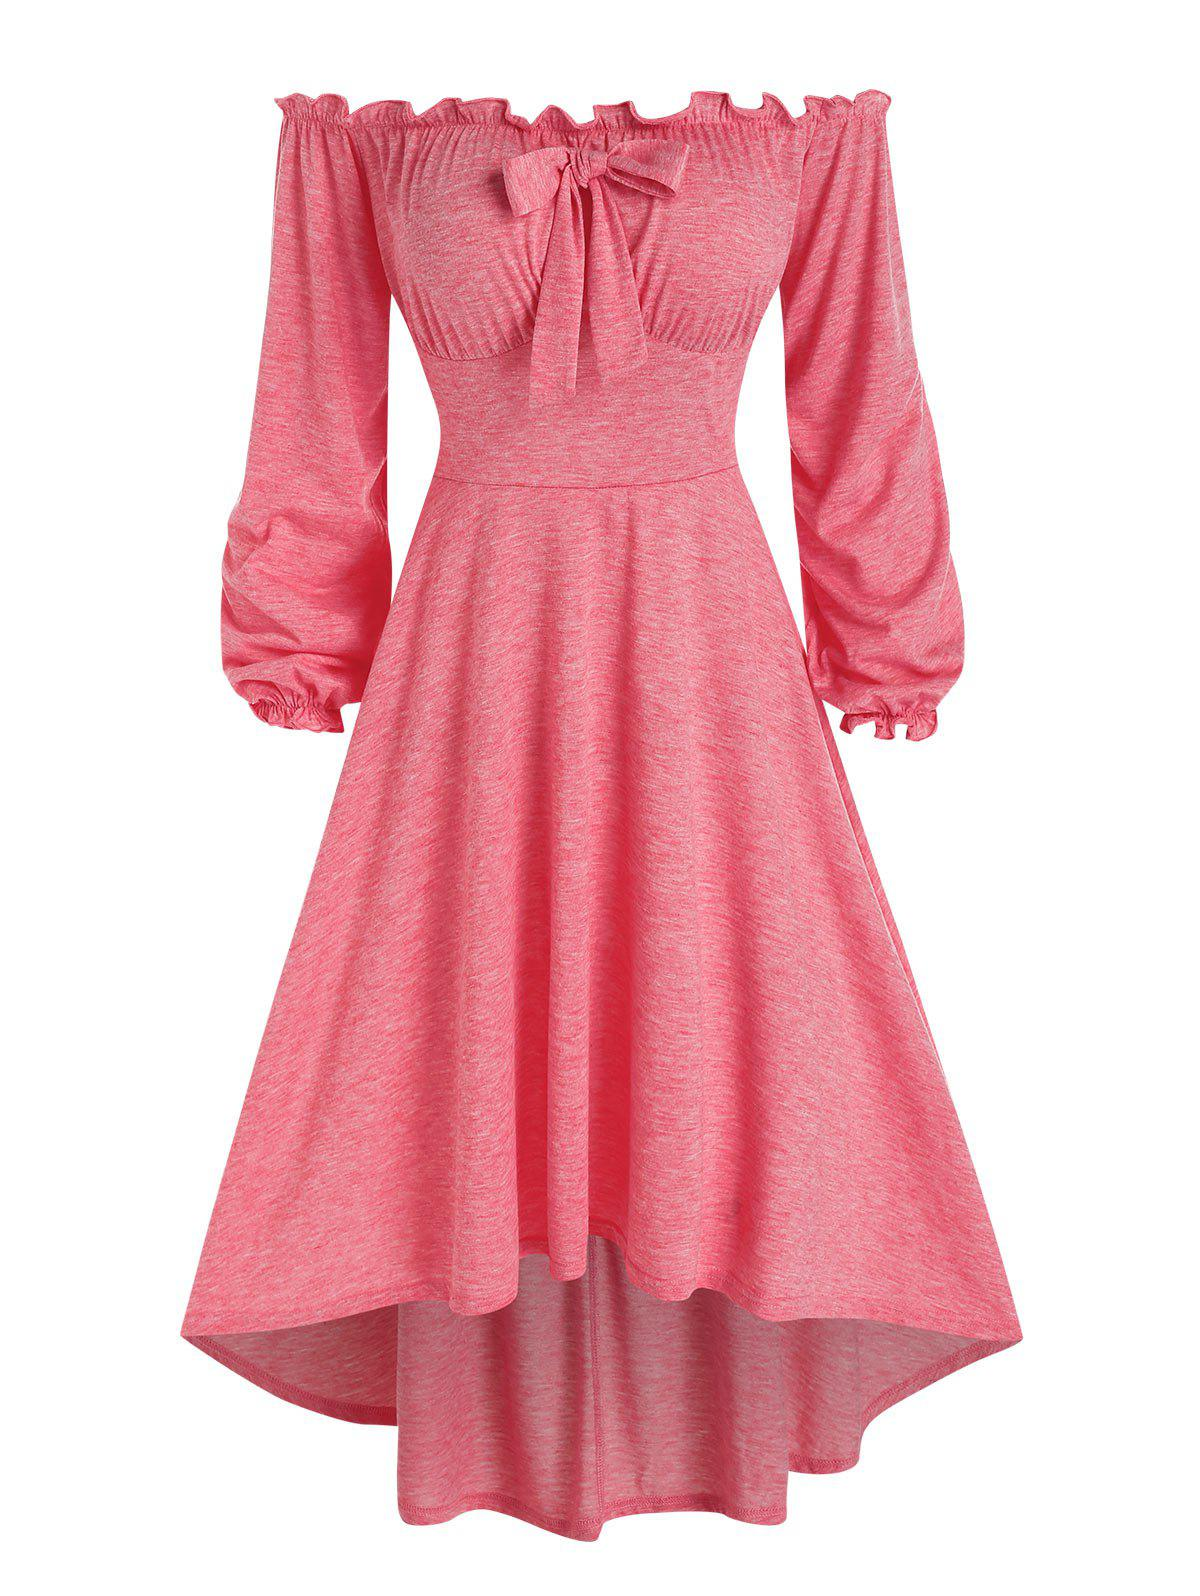 Off The Shoulder Bowknot High Low Dress - LIGHT PINK 3XL